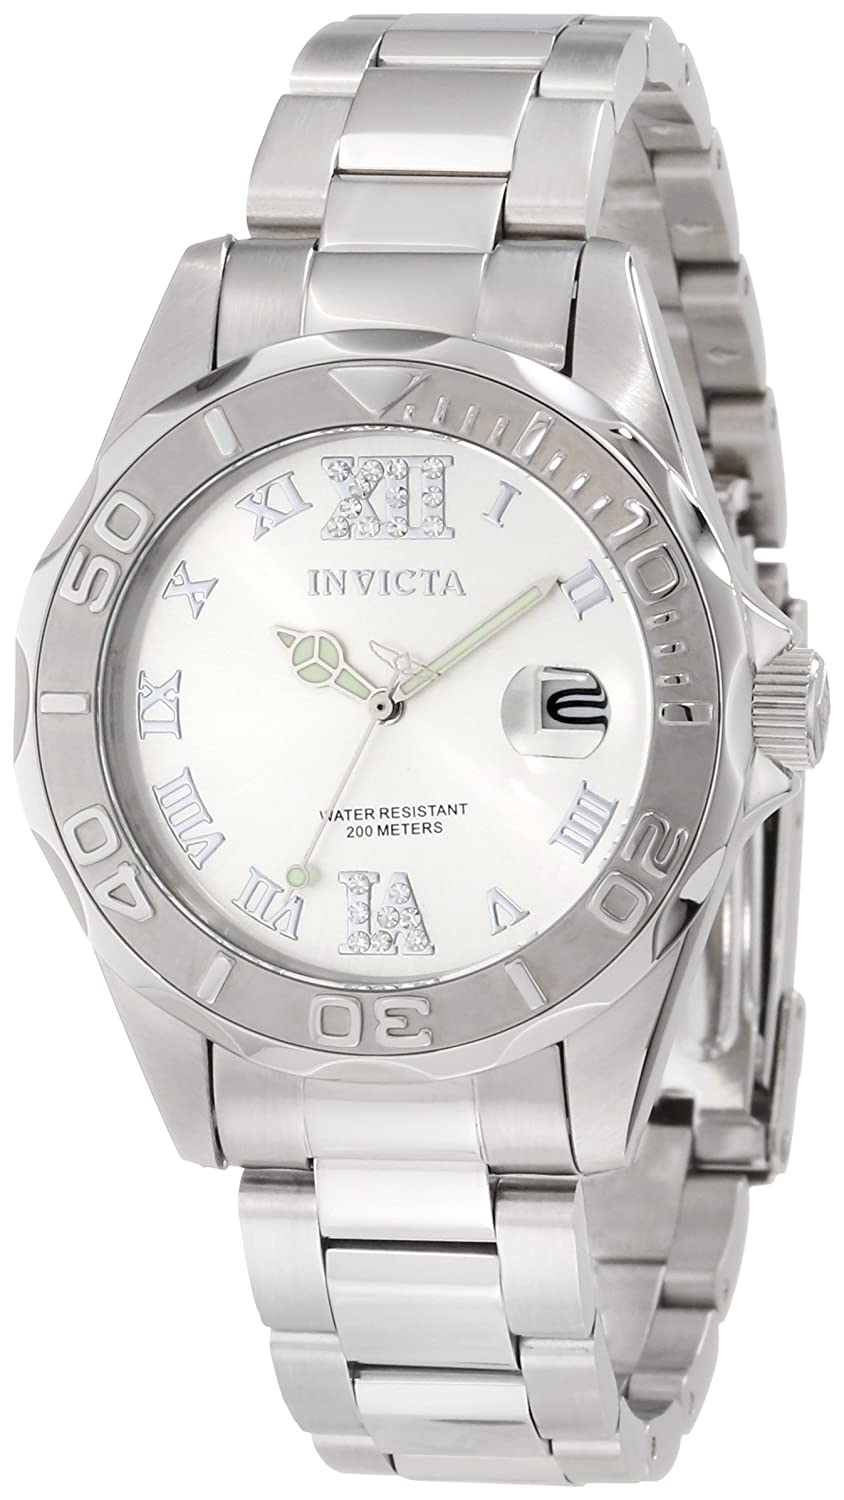 Invicta Women's 12851 Pro Diver Silver Dial Watch with Crystal Accents $79.99